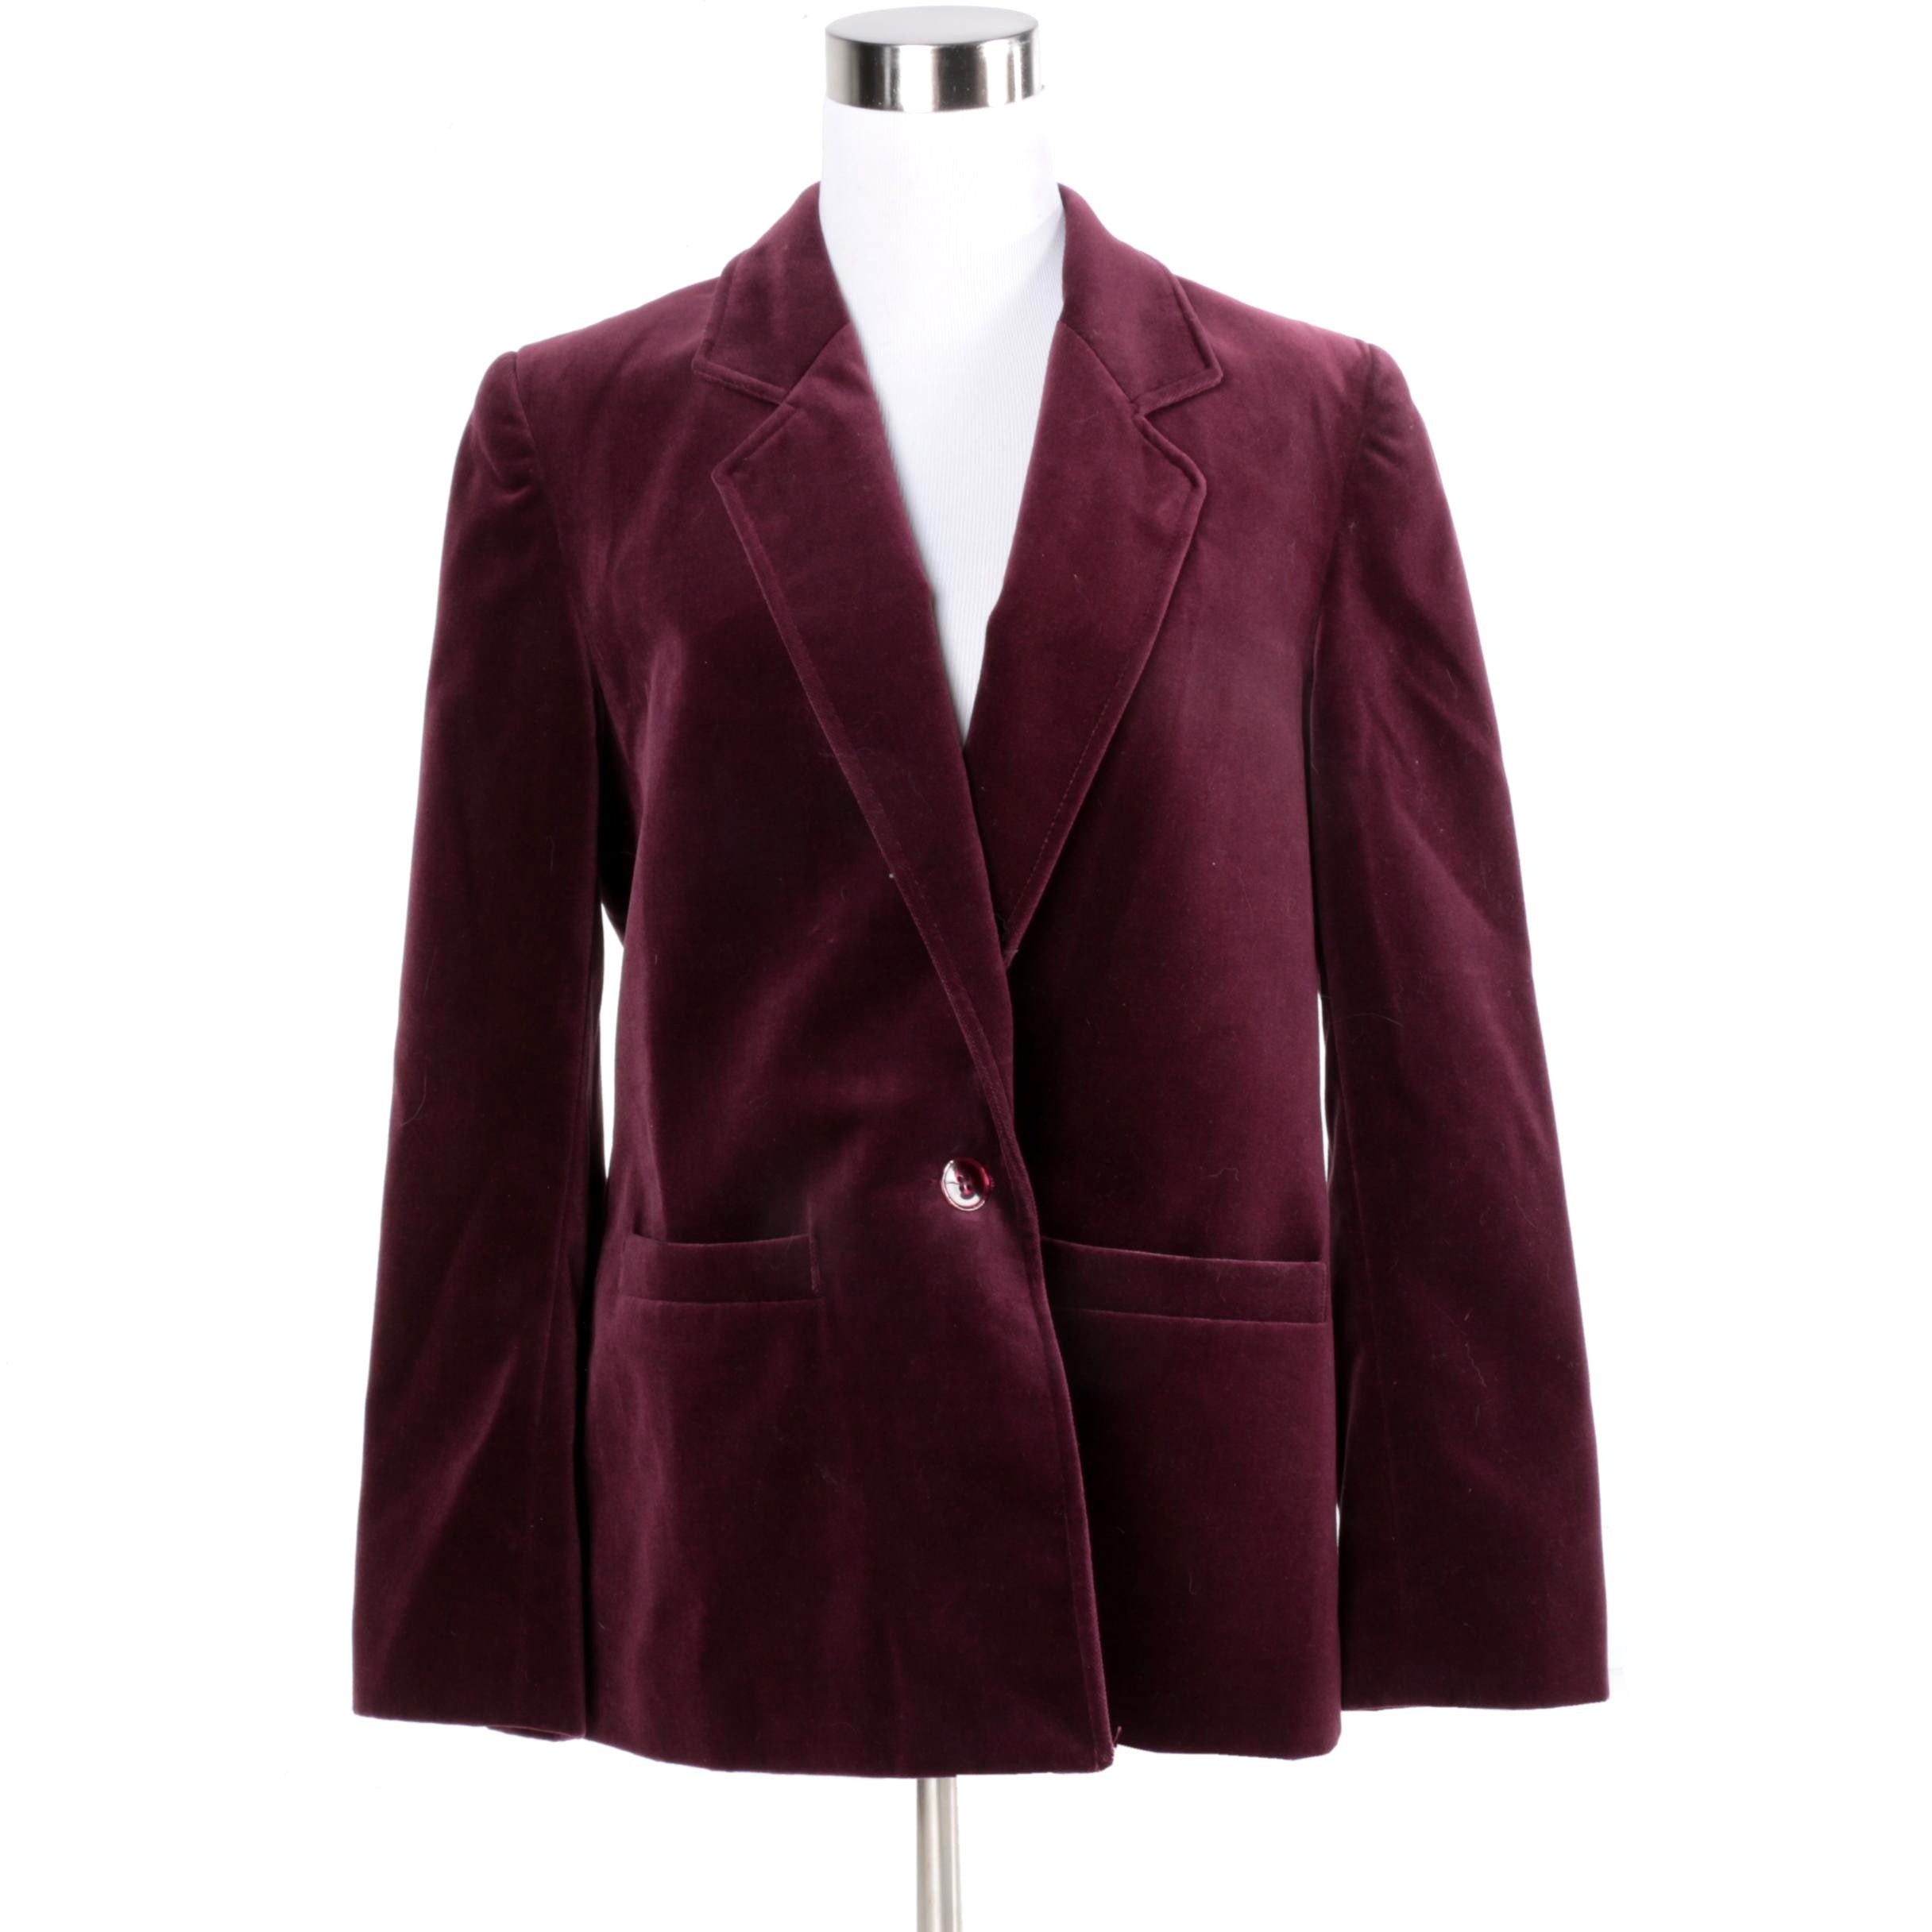 Women's Koret Burgundy Suit Jacket